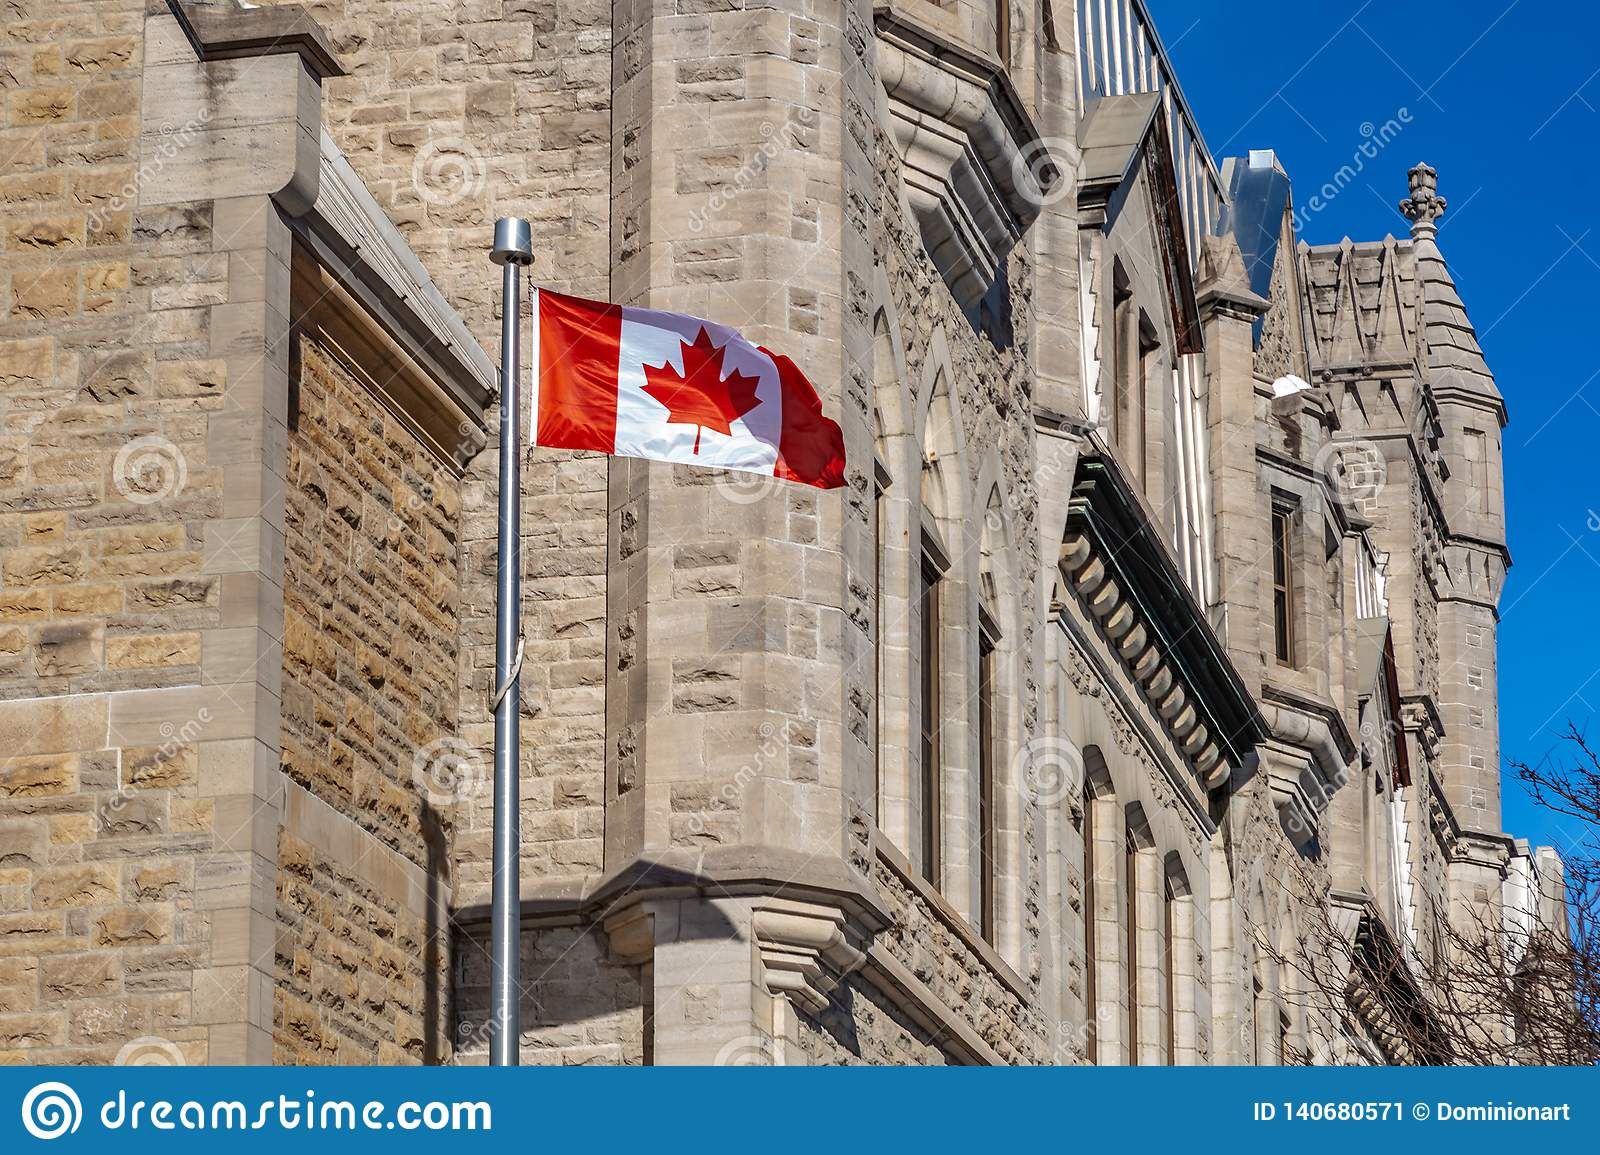 Ottawa CANADA - February 18, 2019: the cultural and national heritage of the Canadian state flag of the Confederation